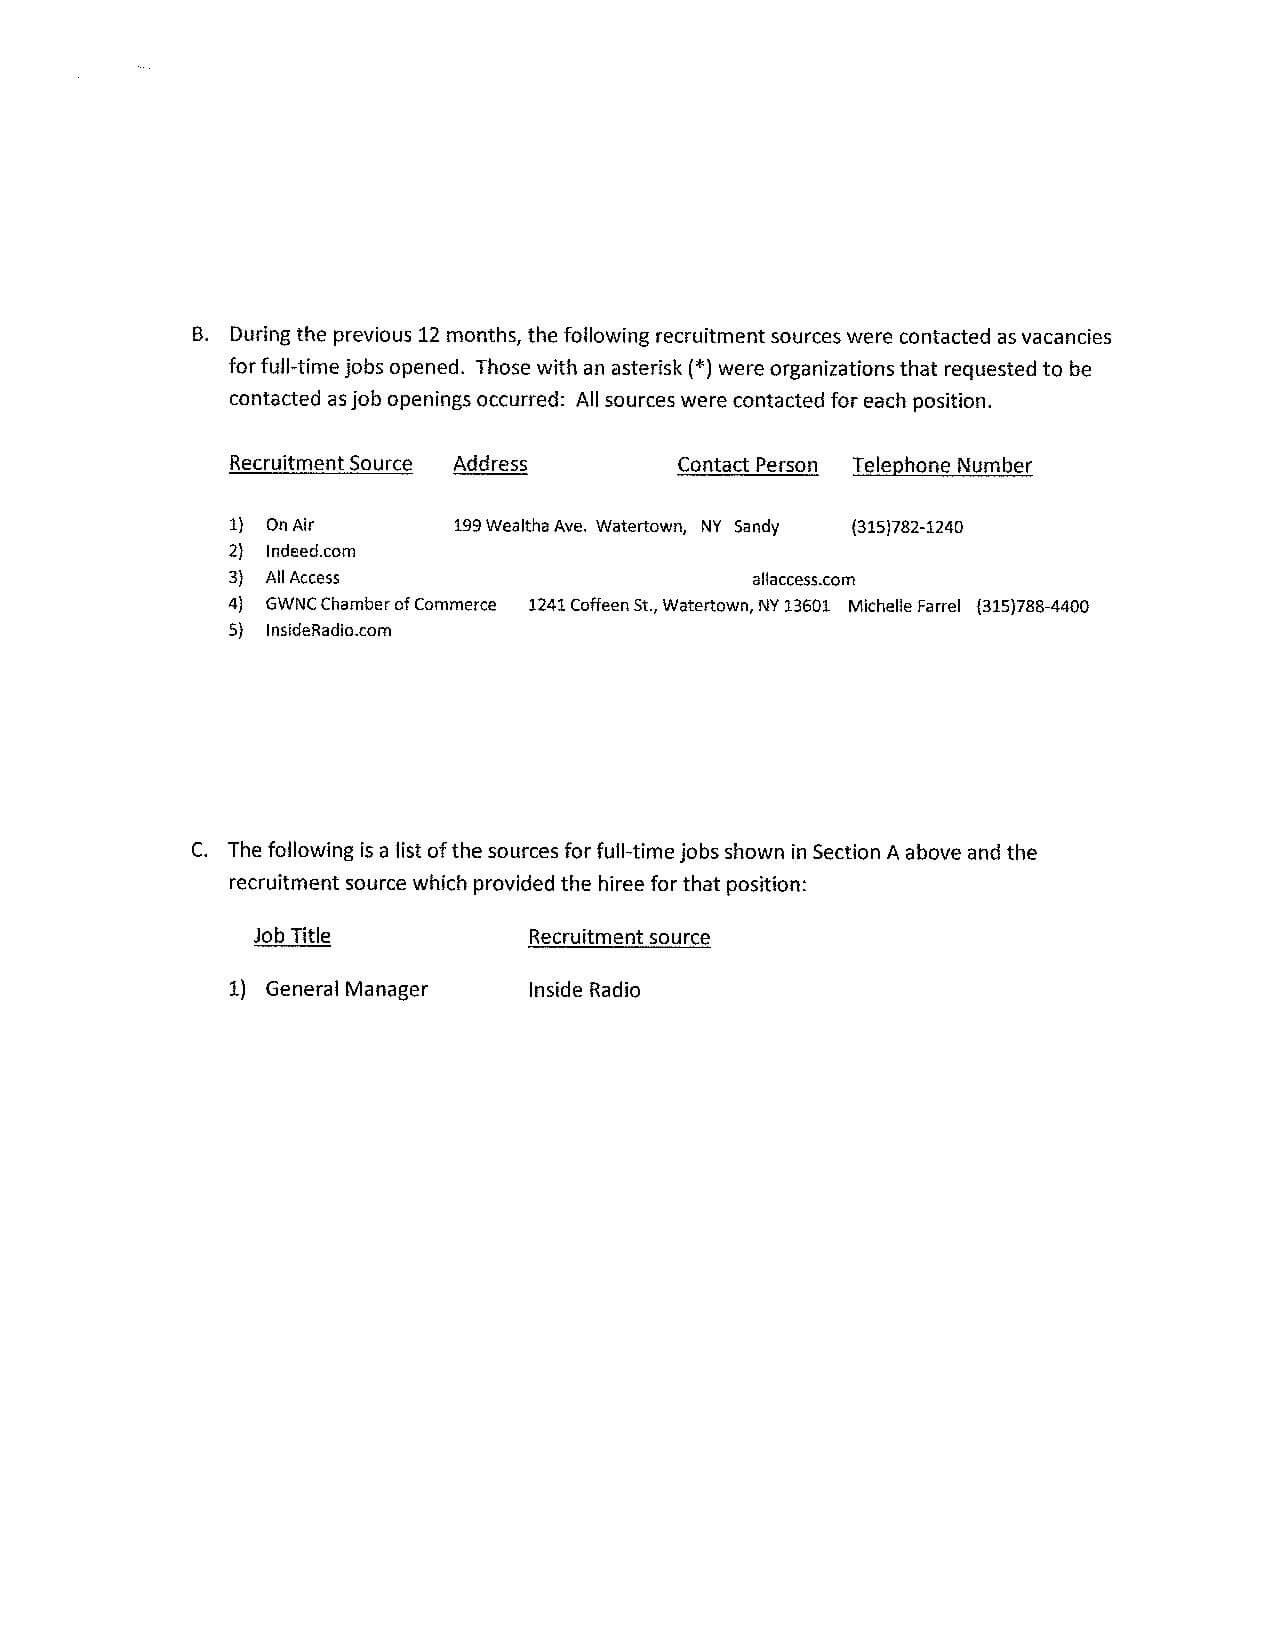 EEO document page 2